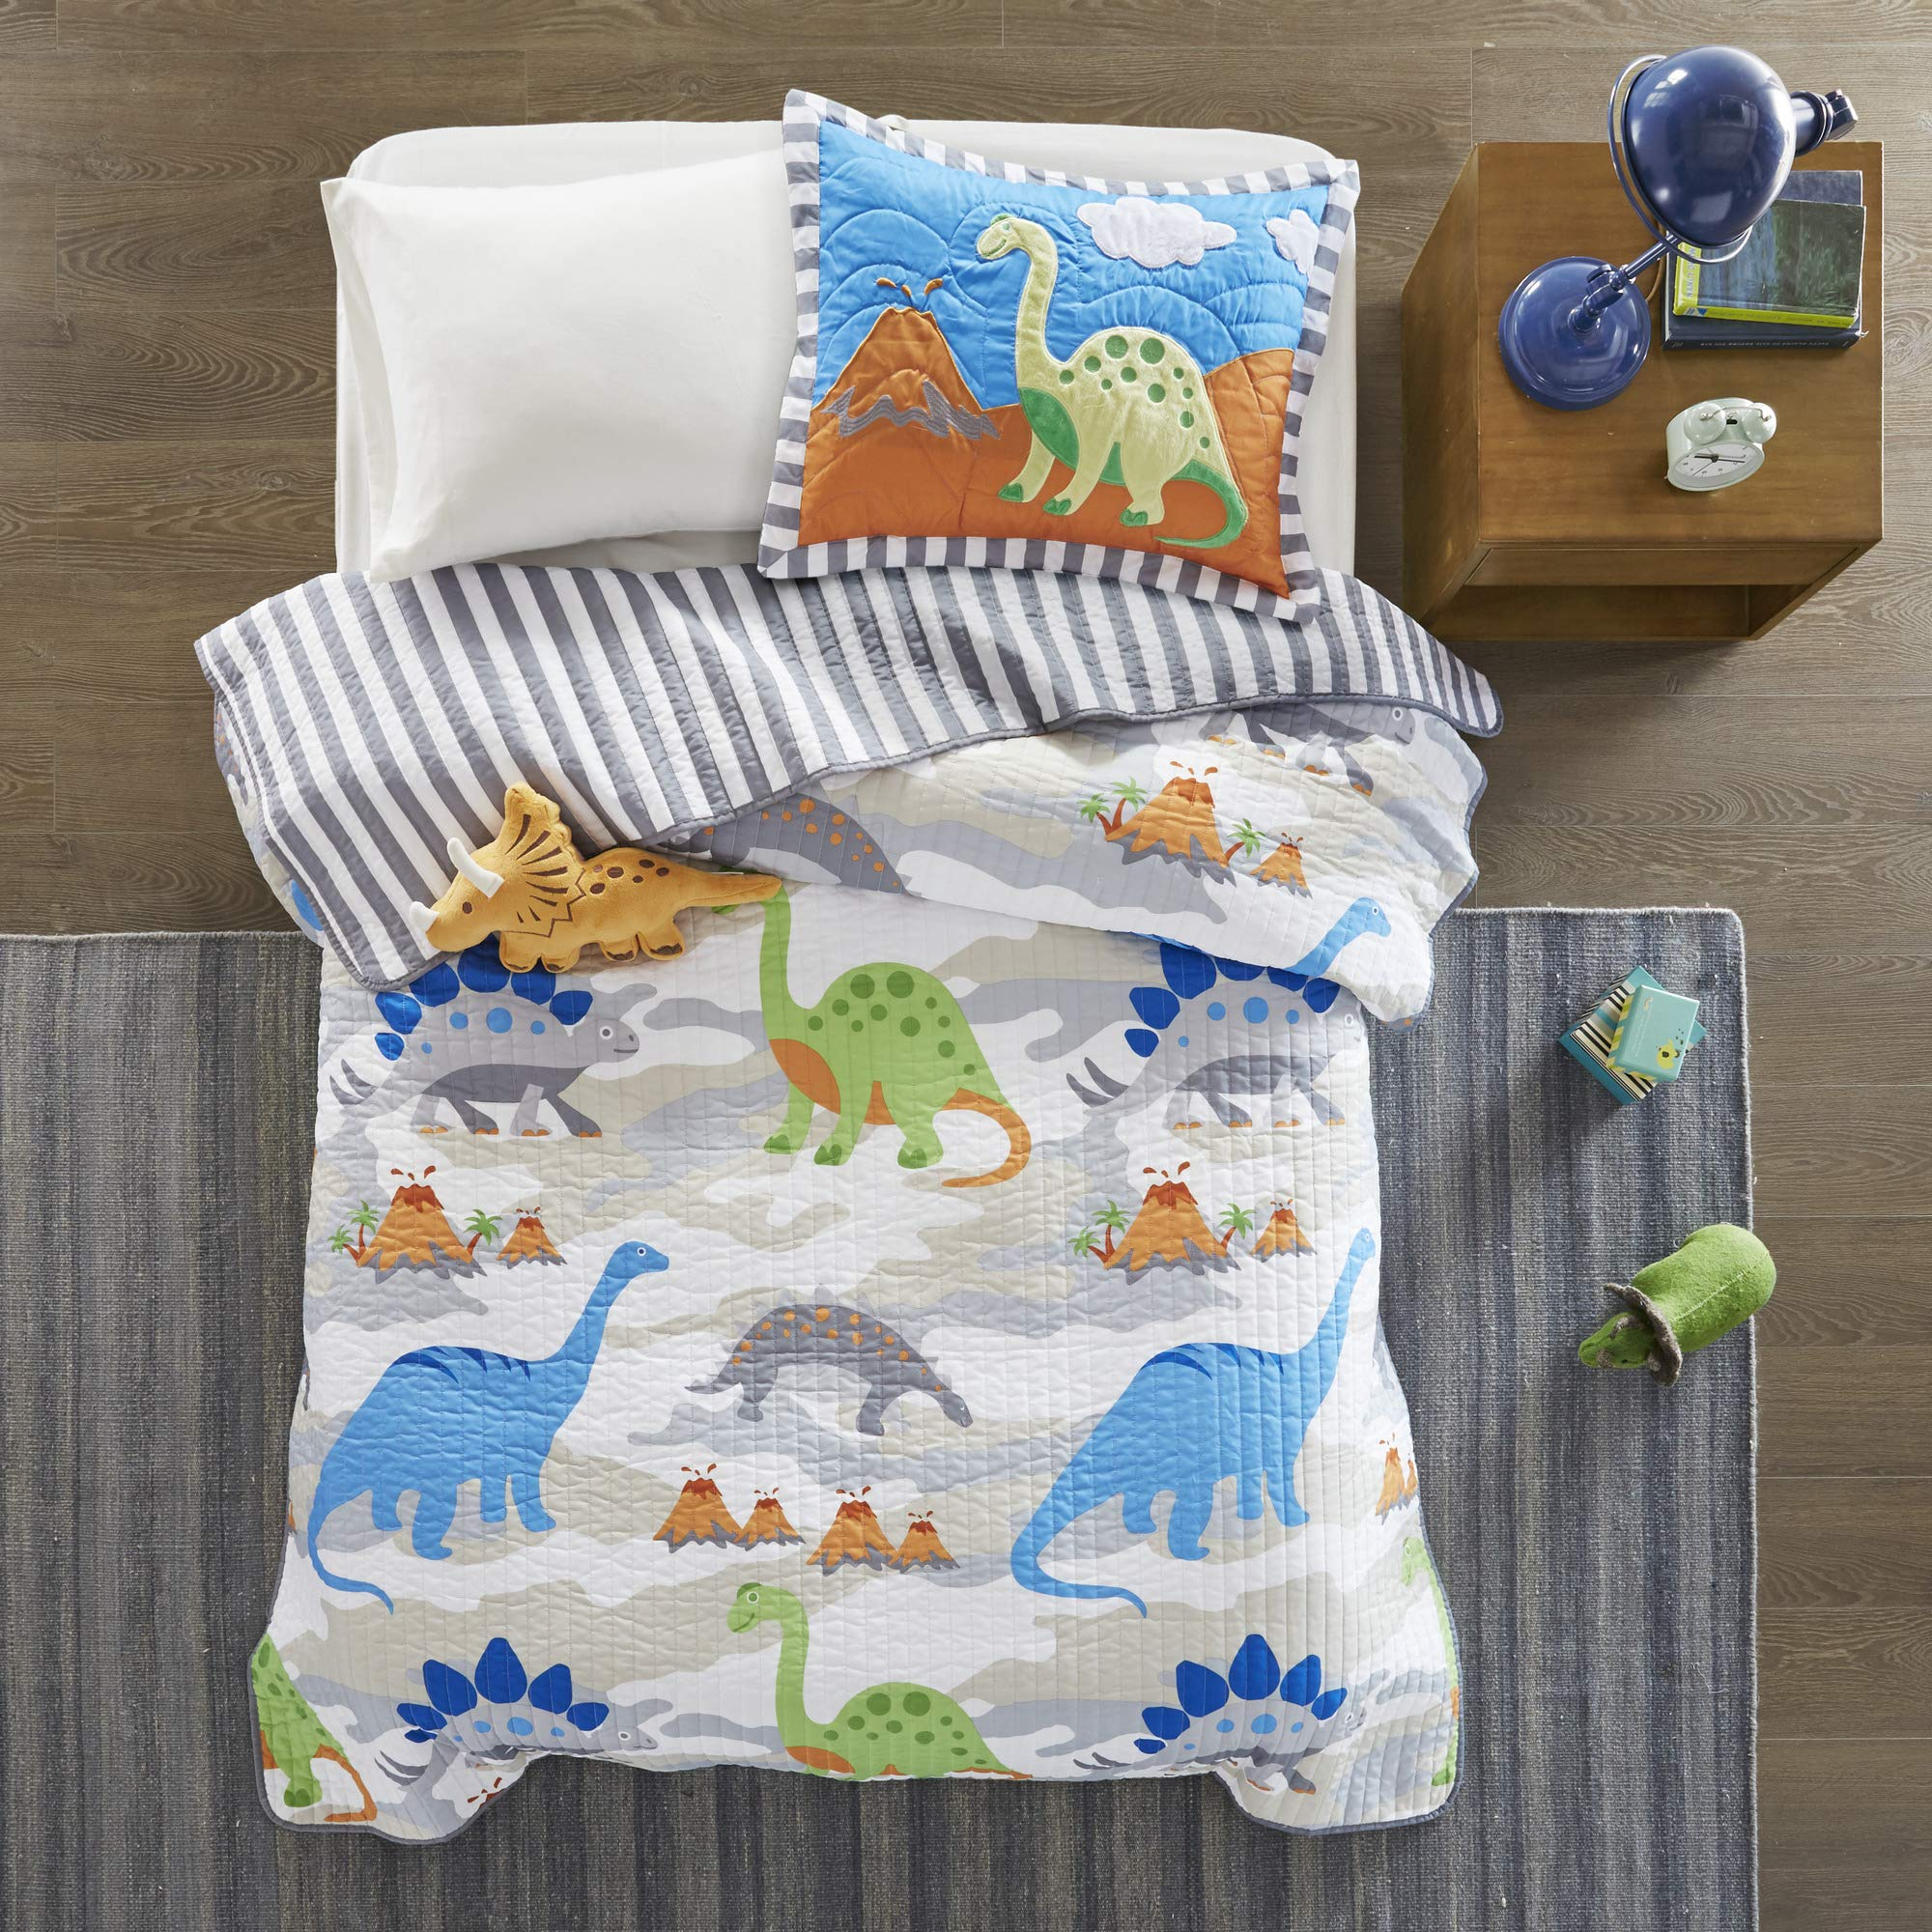 Mi Zone Kids Little Foot Twin Bedding Sets Boys Quilt Set - Grey, Blue, Orange , Dinosaur - 3 Piece Kids Quilt For Boys - Cotton Filling Ultra Soft Microfiber Quilt Sets Coverlet by Mi-Zone